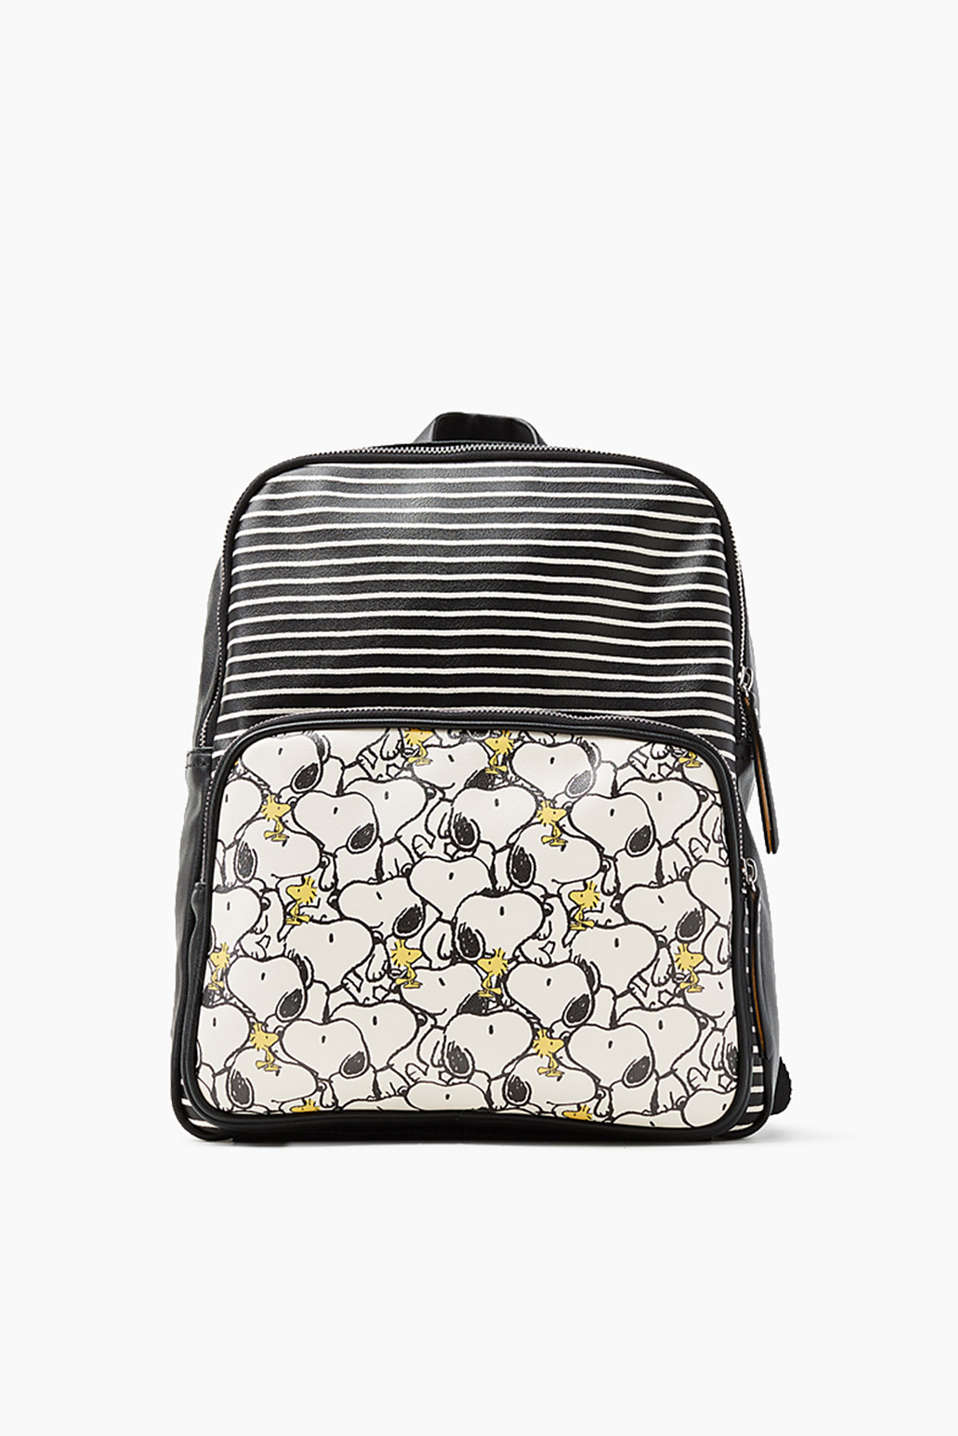 Esprit - Snoopy-Rucksack in Leder-Optik